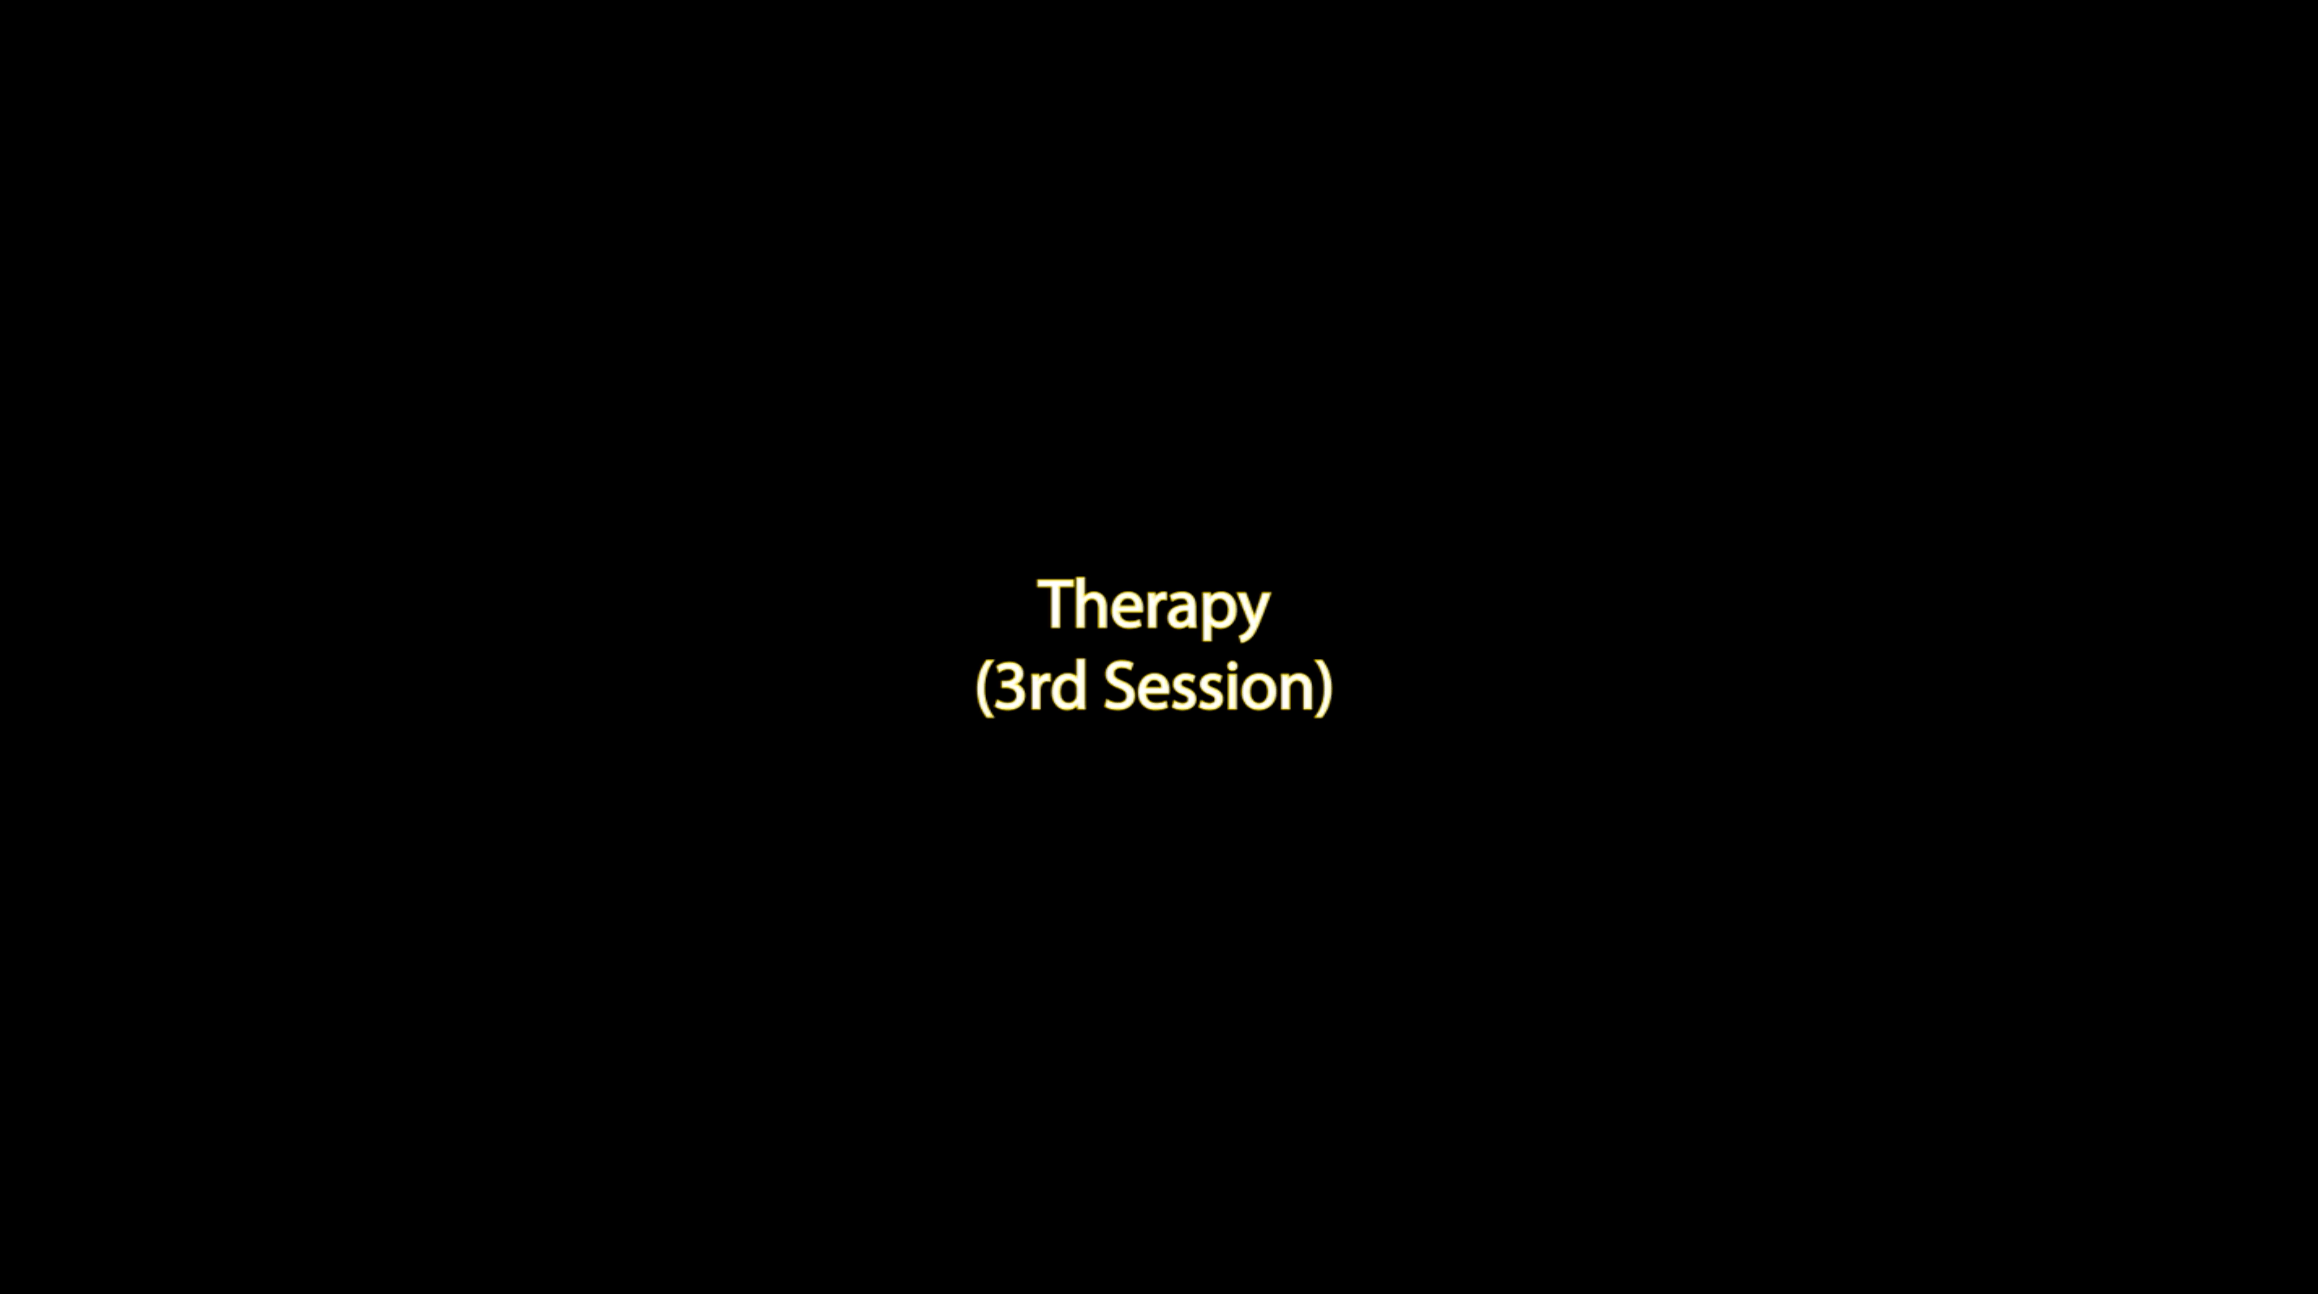 Therapy (3rd session)